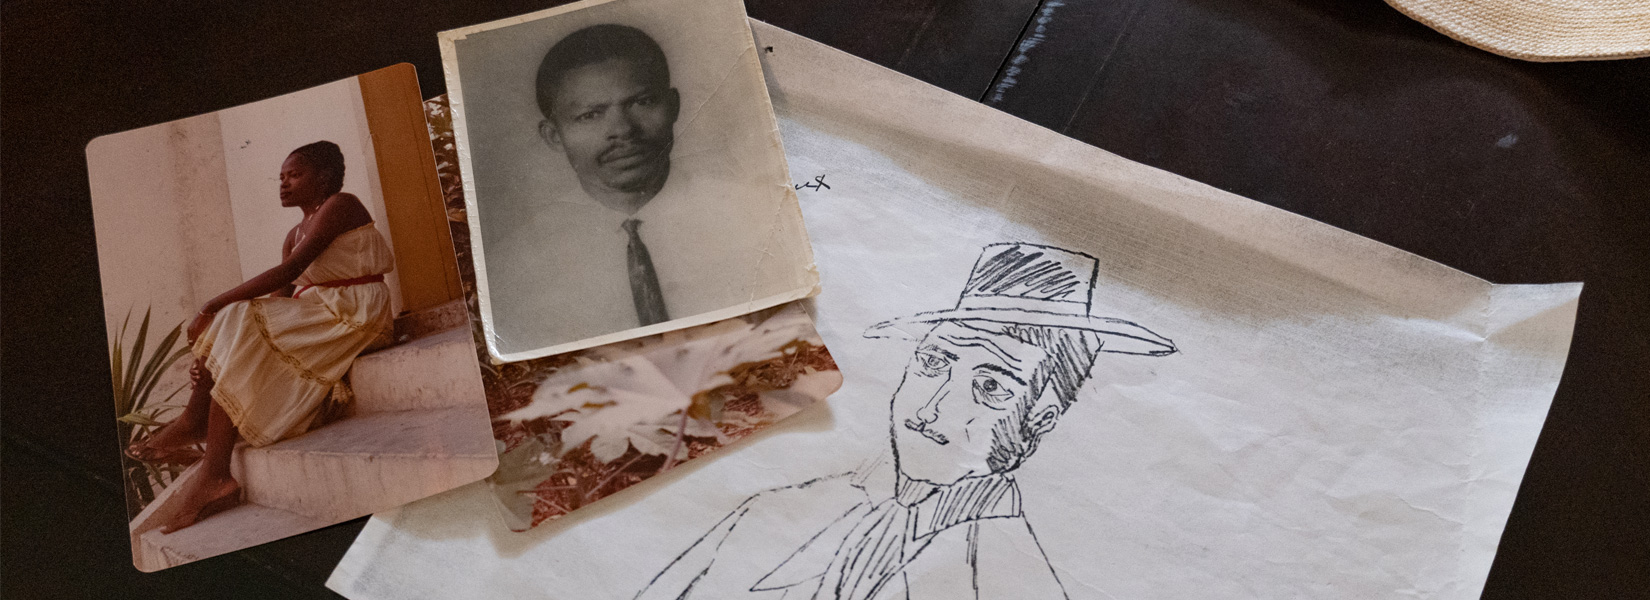 Vintage photos, one of a woman and one of a man,next to pencil sketch of main in hat